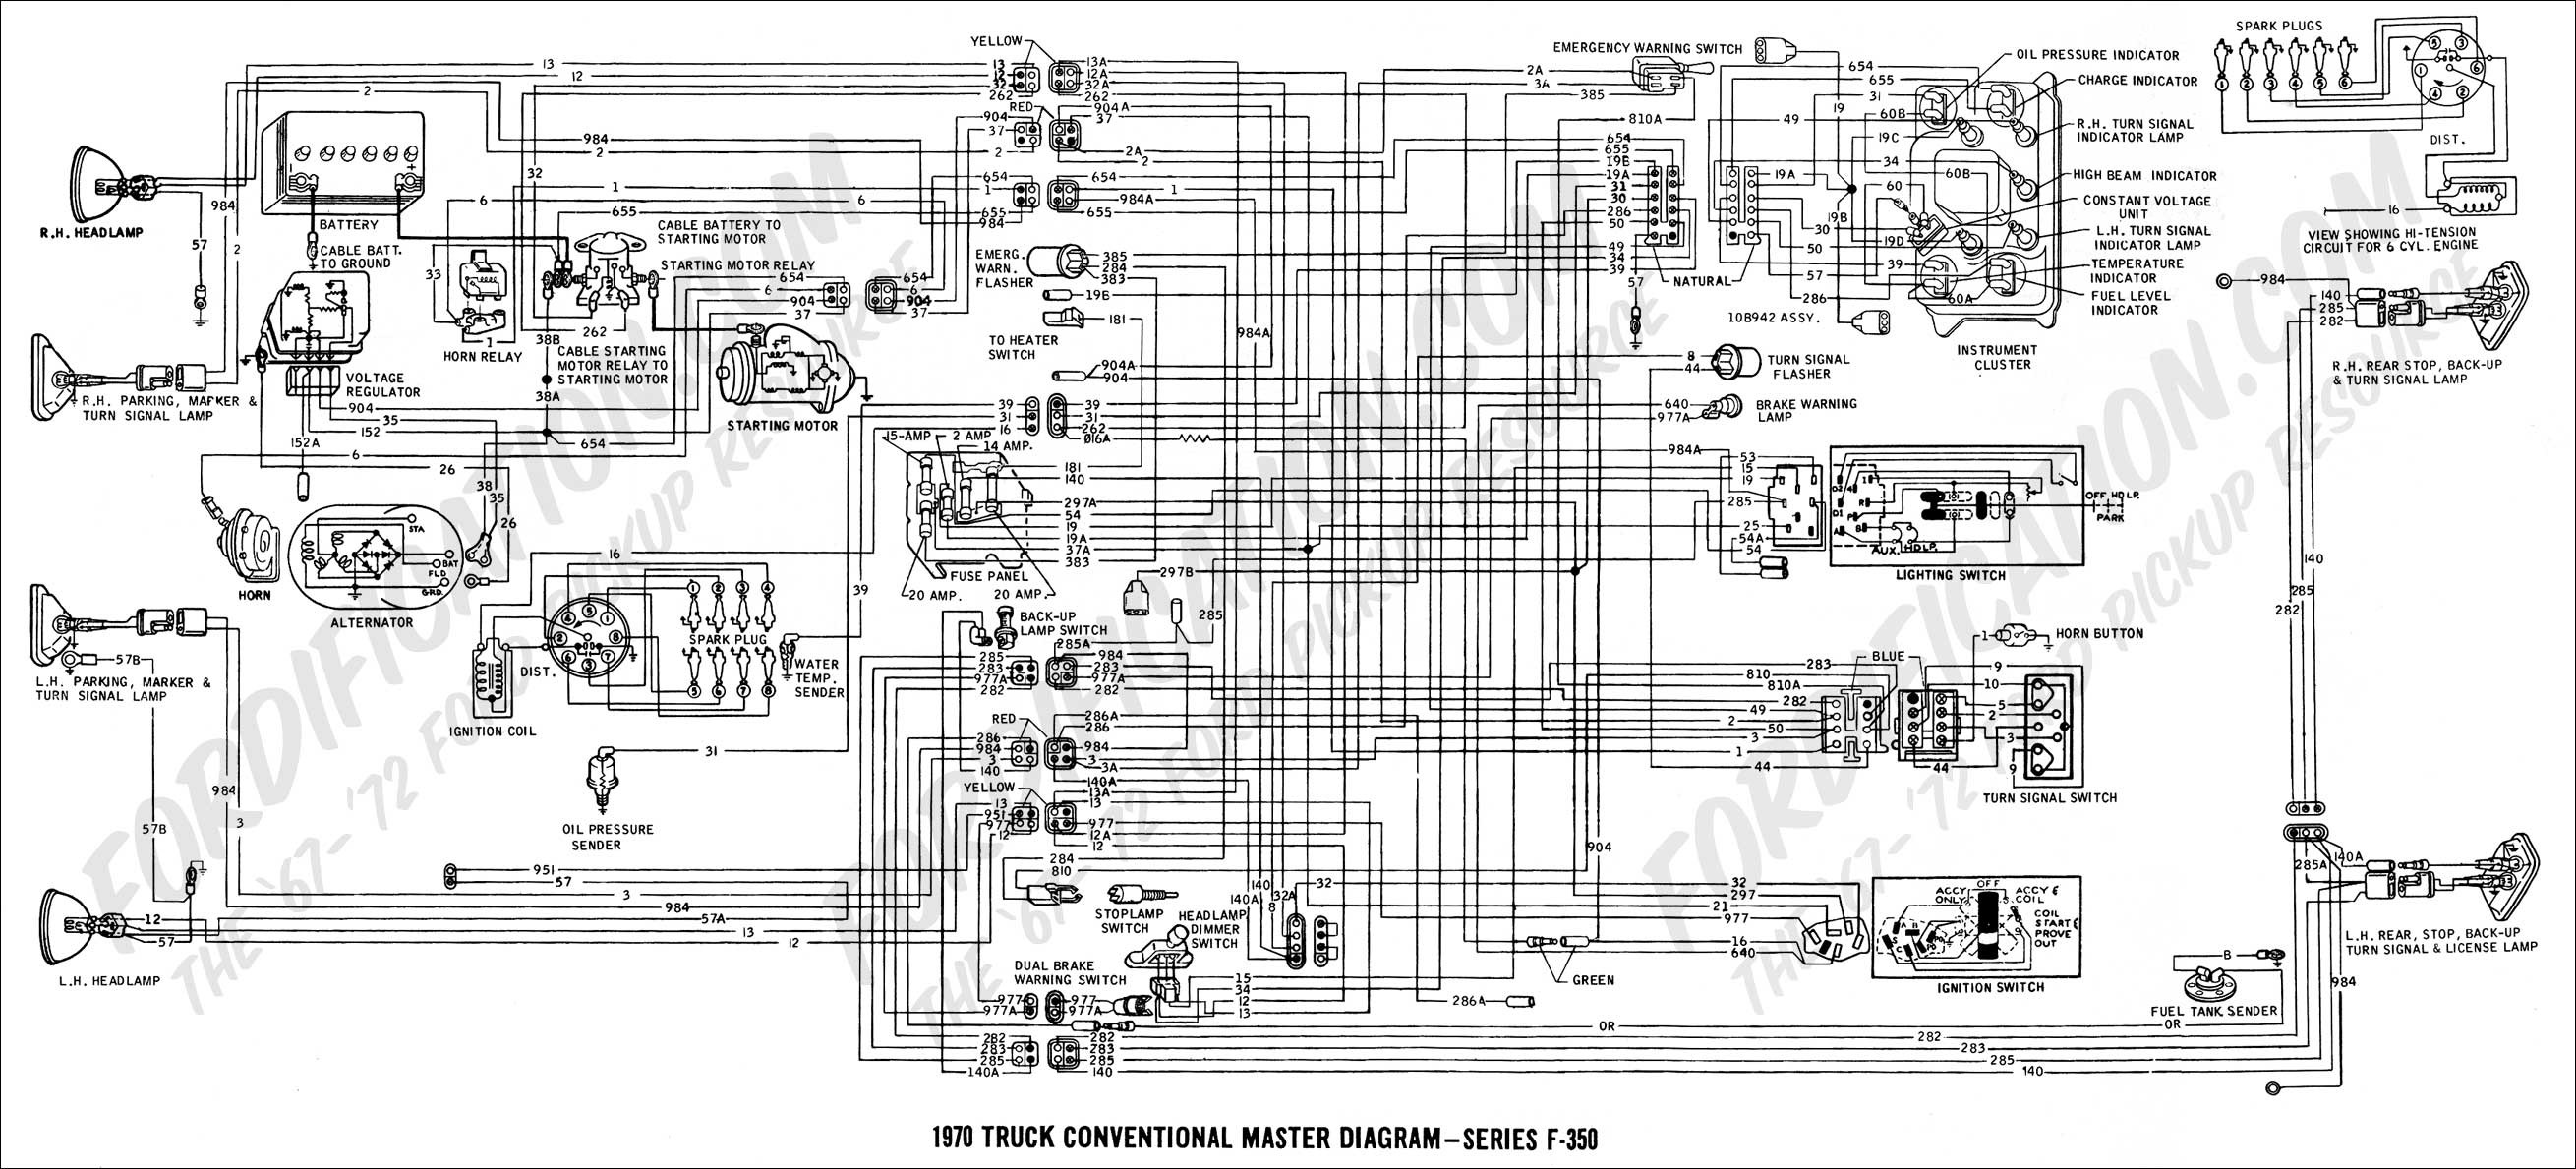 1954 Mercury Wiring Diagram Worksheet And 2006 Monterey Fuse Images Gallery